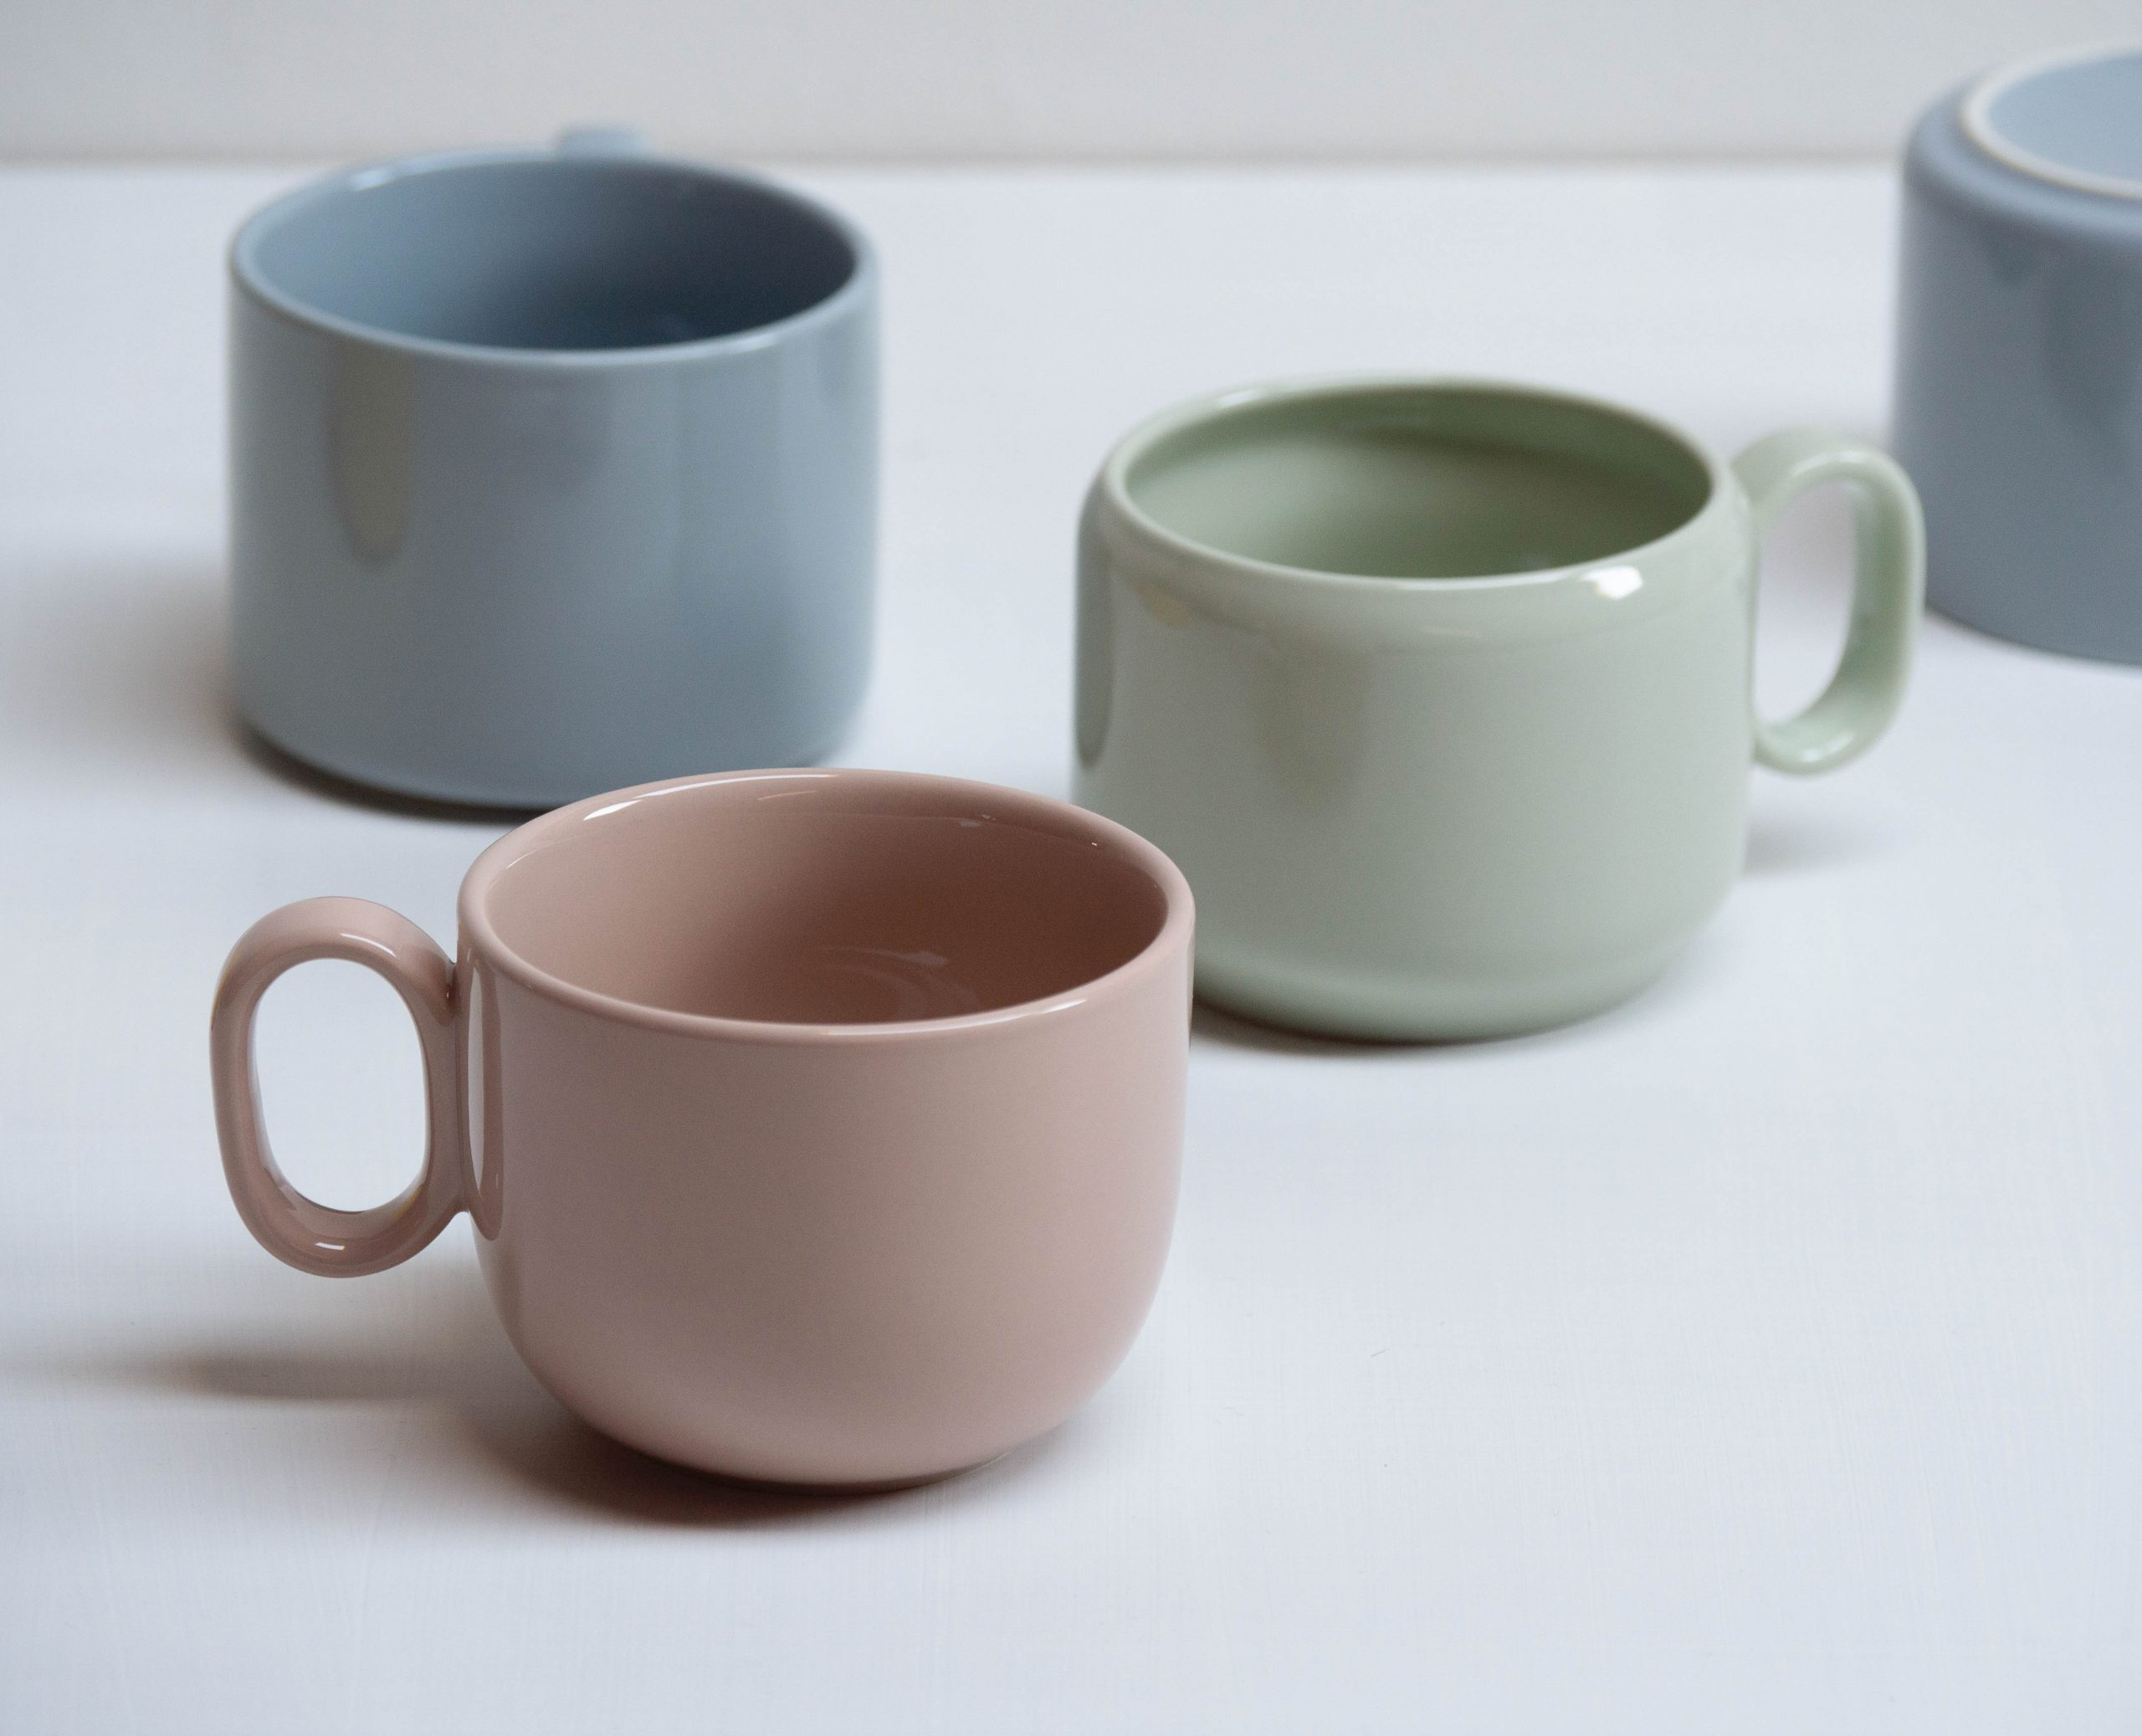 Detail of Colourful Mix N Match cups by Debiasi Sandri for RigTig